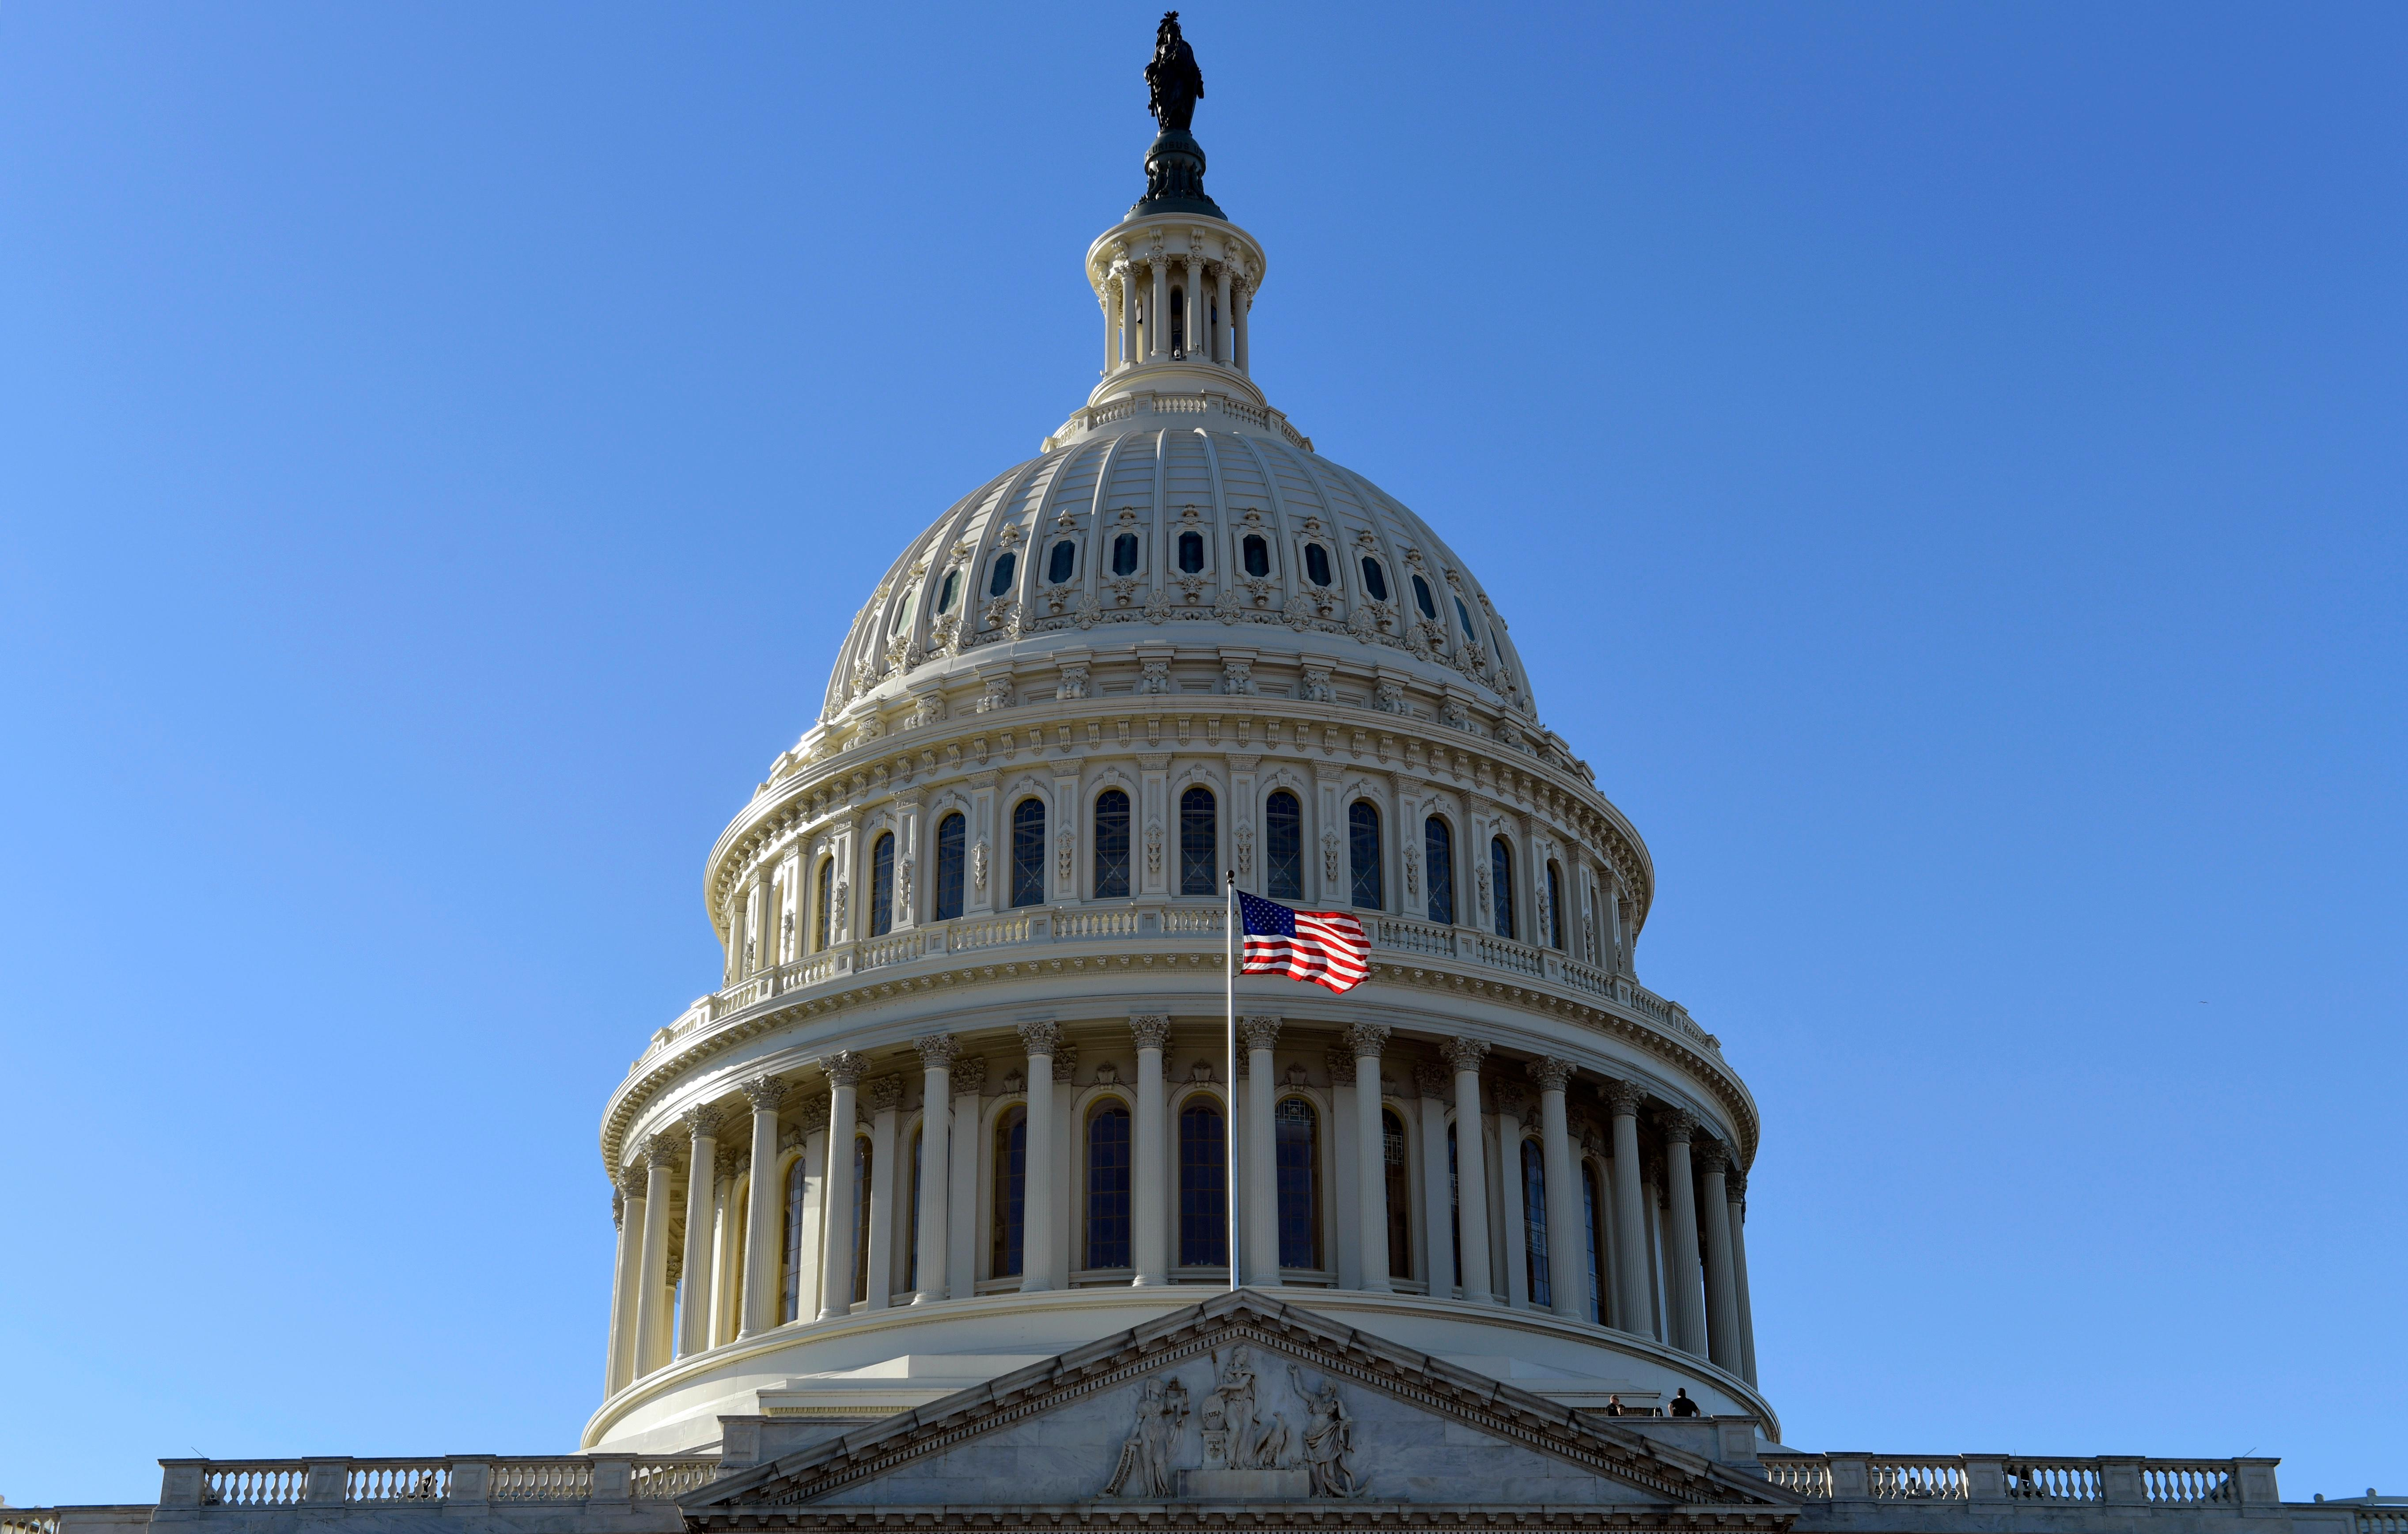 A flag flies on at the U.S. Capitol in Washington, Tuesday, Nov. 28, 2017. The House is scheduled to vote on adopting mandatory anti-sexual harassment training for all members and their staff. The vote comes amid a wave of allegations of sexual misconduct against lawmakers that has thrust the issue of gender hostility and discrimination on Capitol Hill squarely into the spotlight. (AP Photo/Susan Walsh)